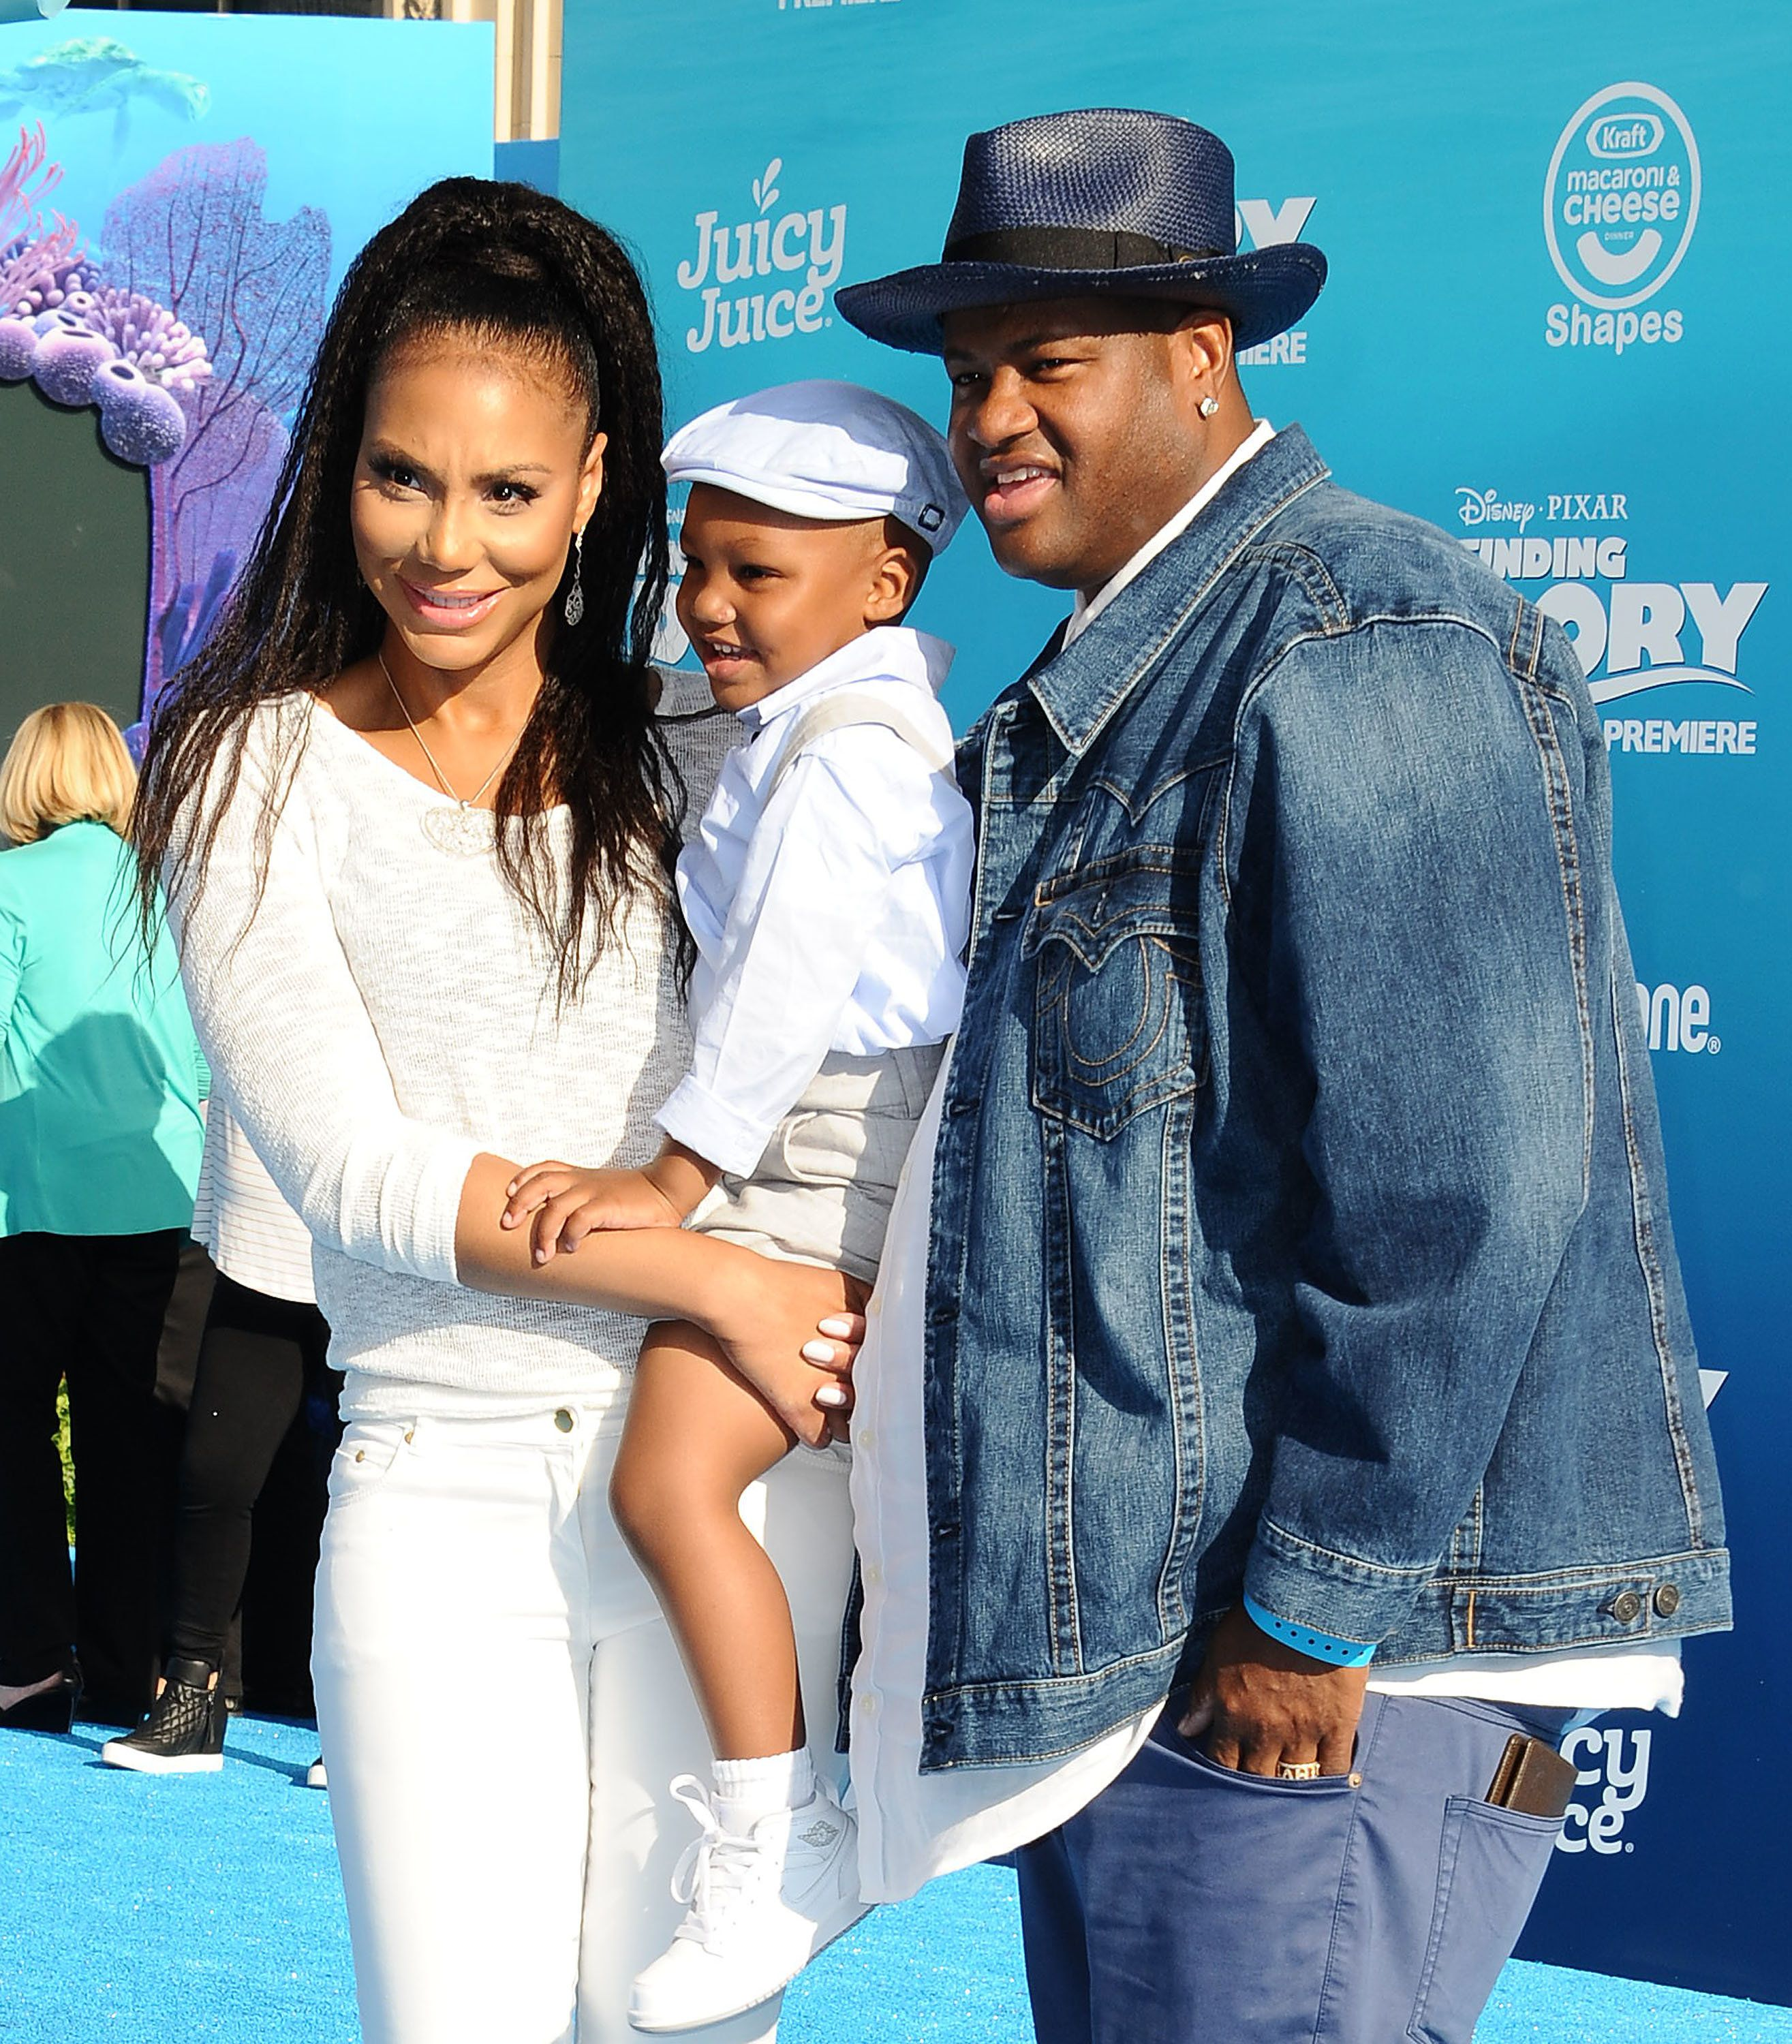 The singer and her husband have a 3-year-old son named Logan.